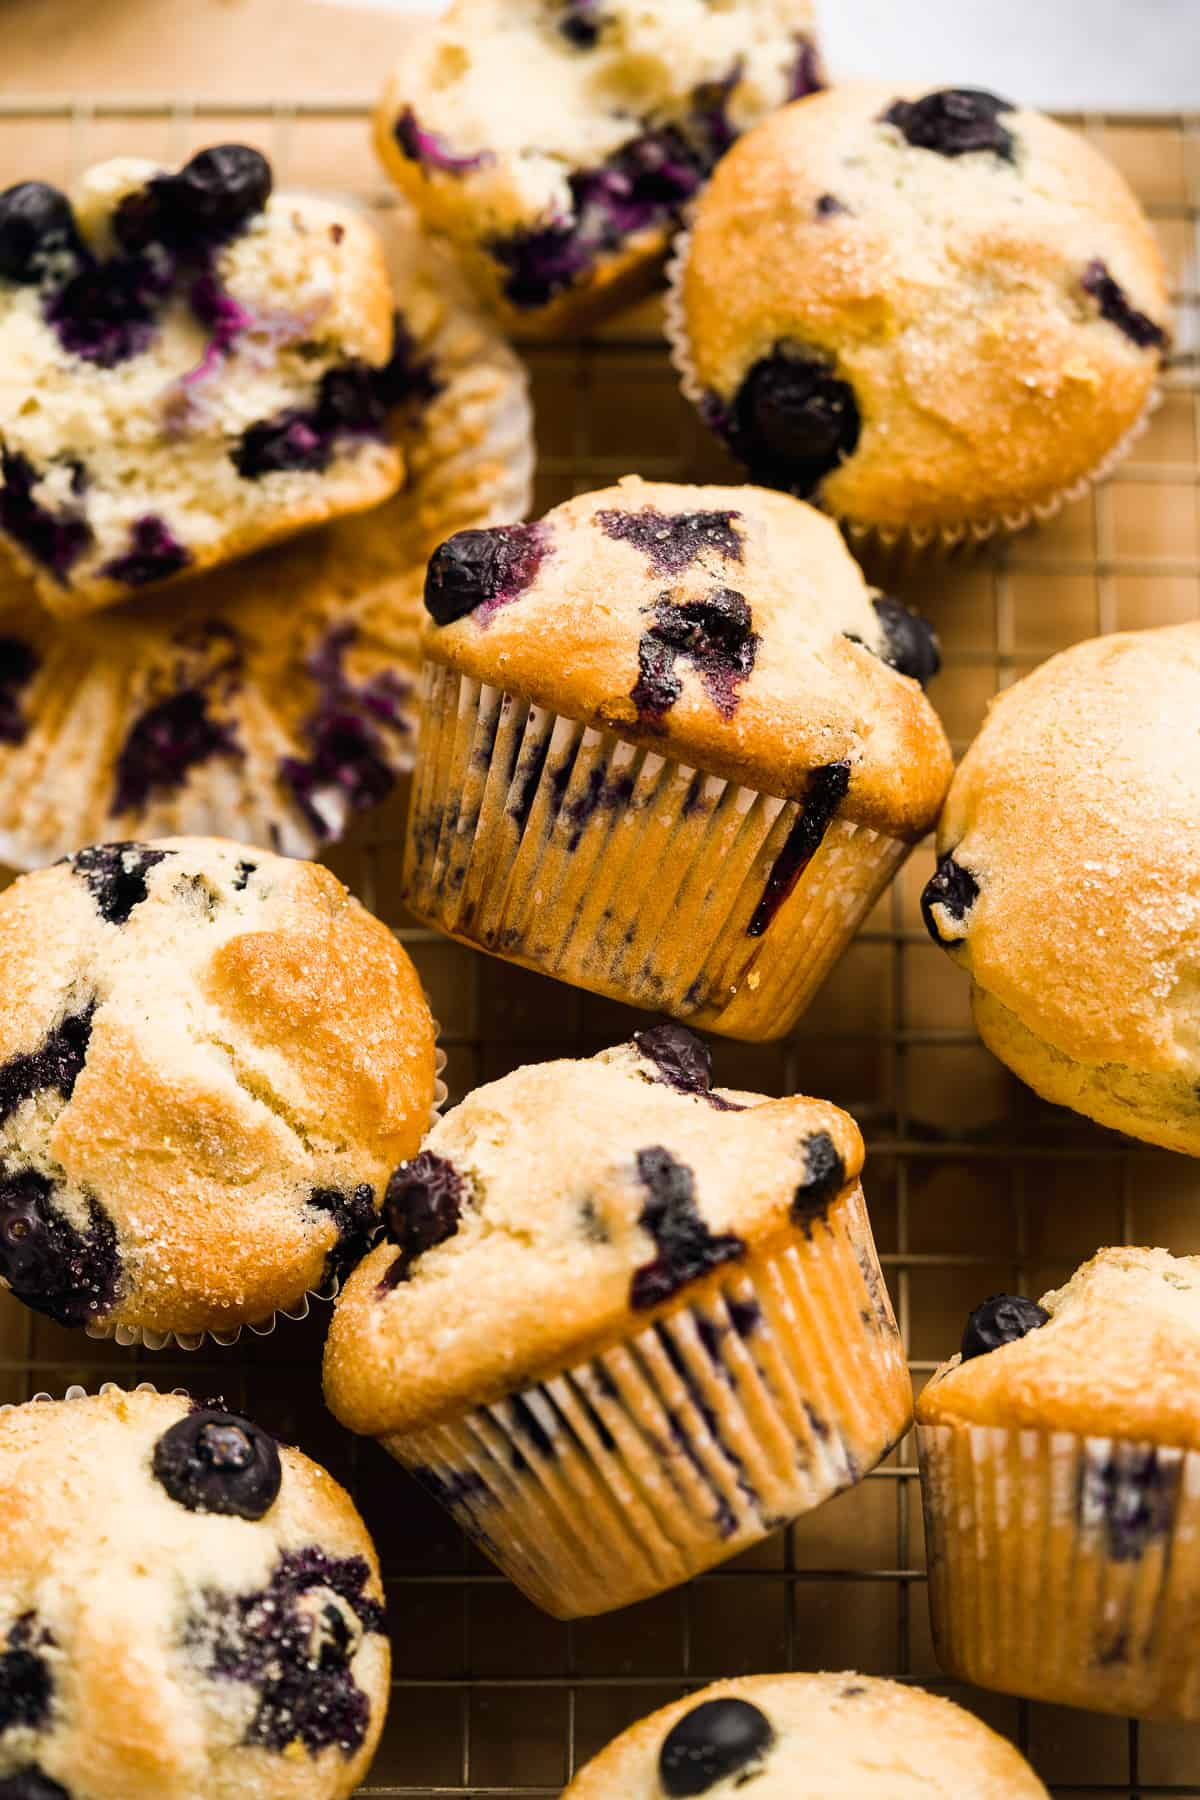 Blueberry muffins scattered on wire cooling rack.